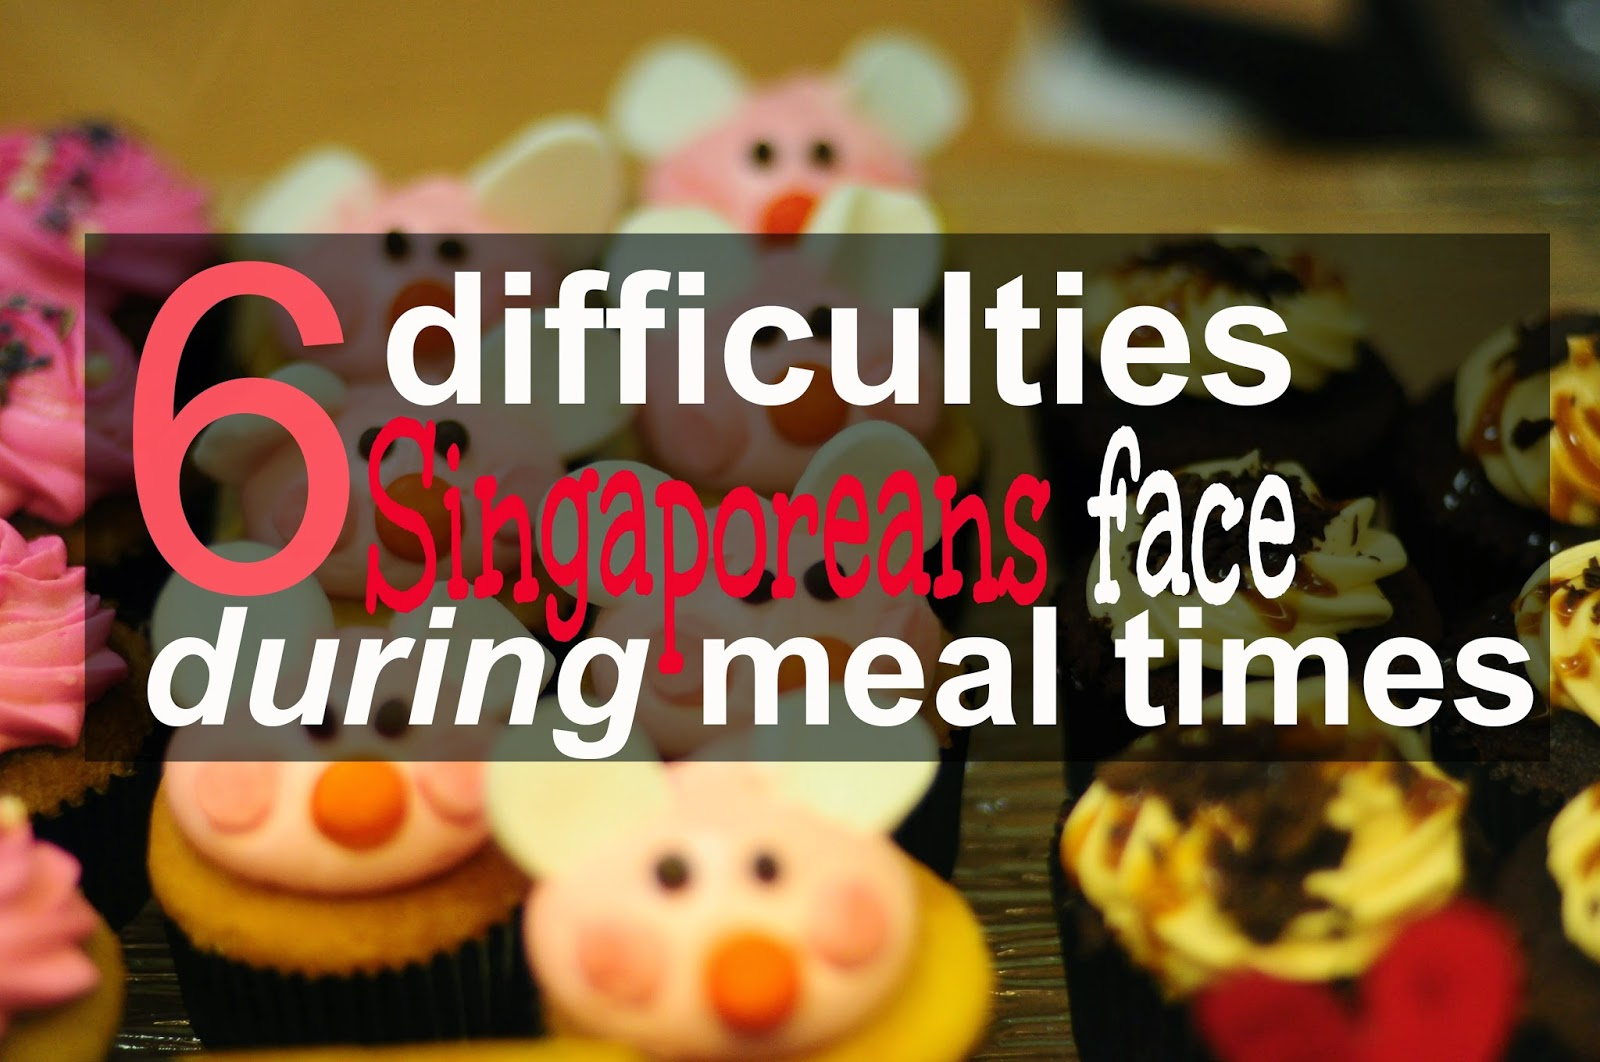 Difficulties and challenges for Singaporeans